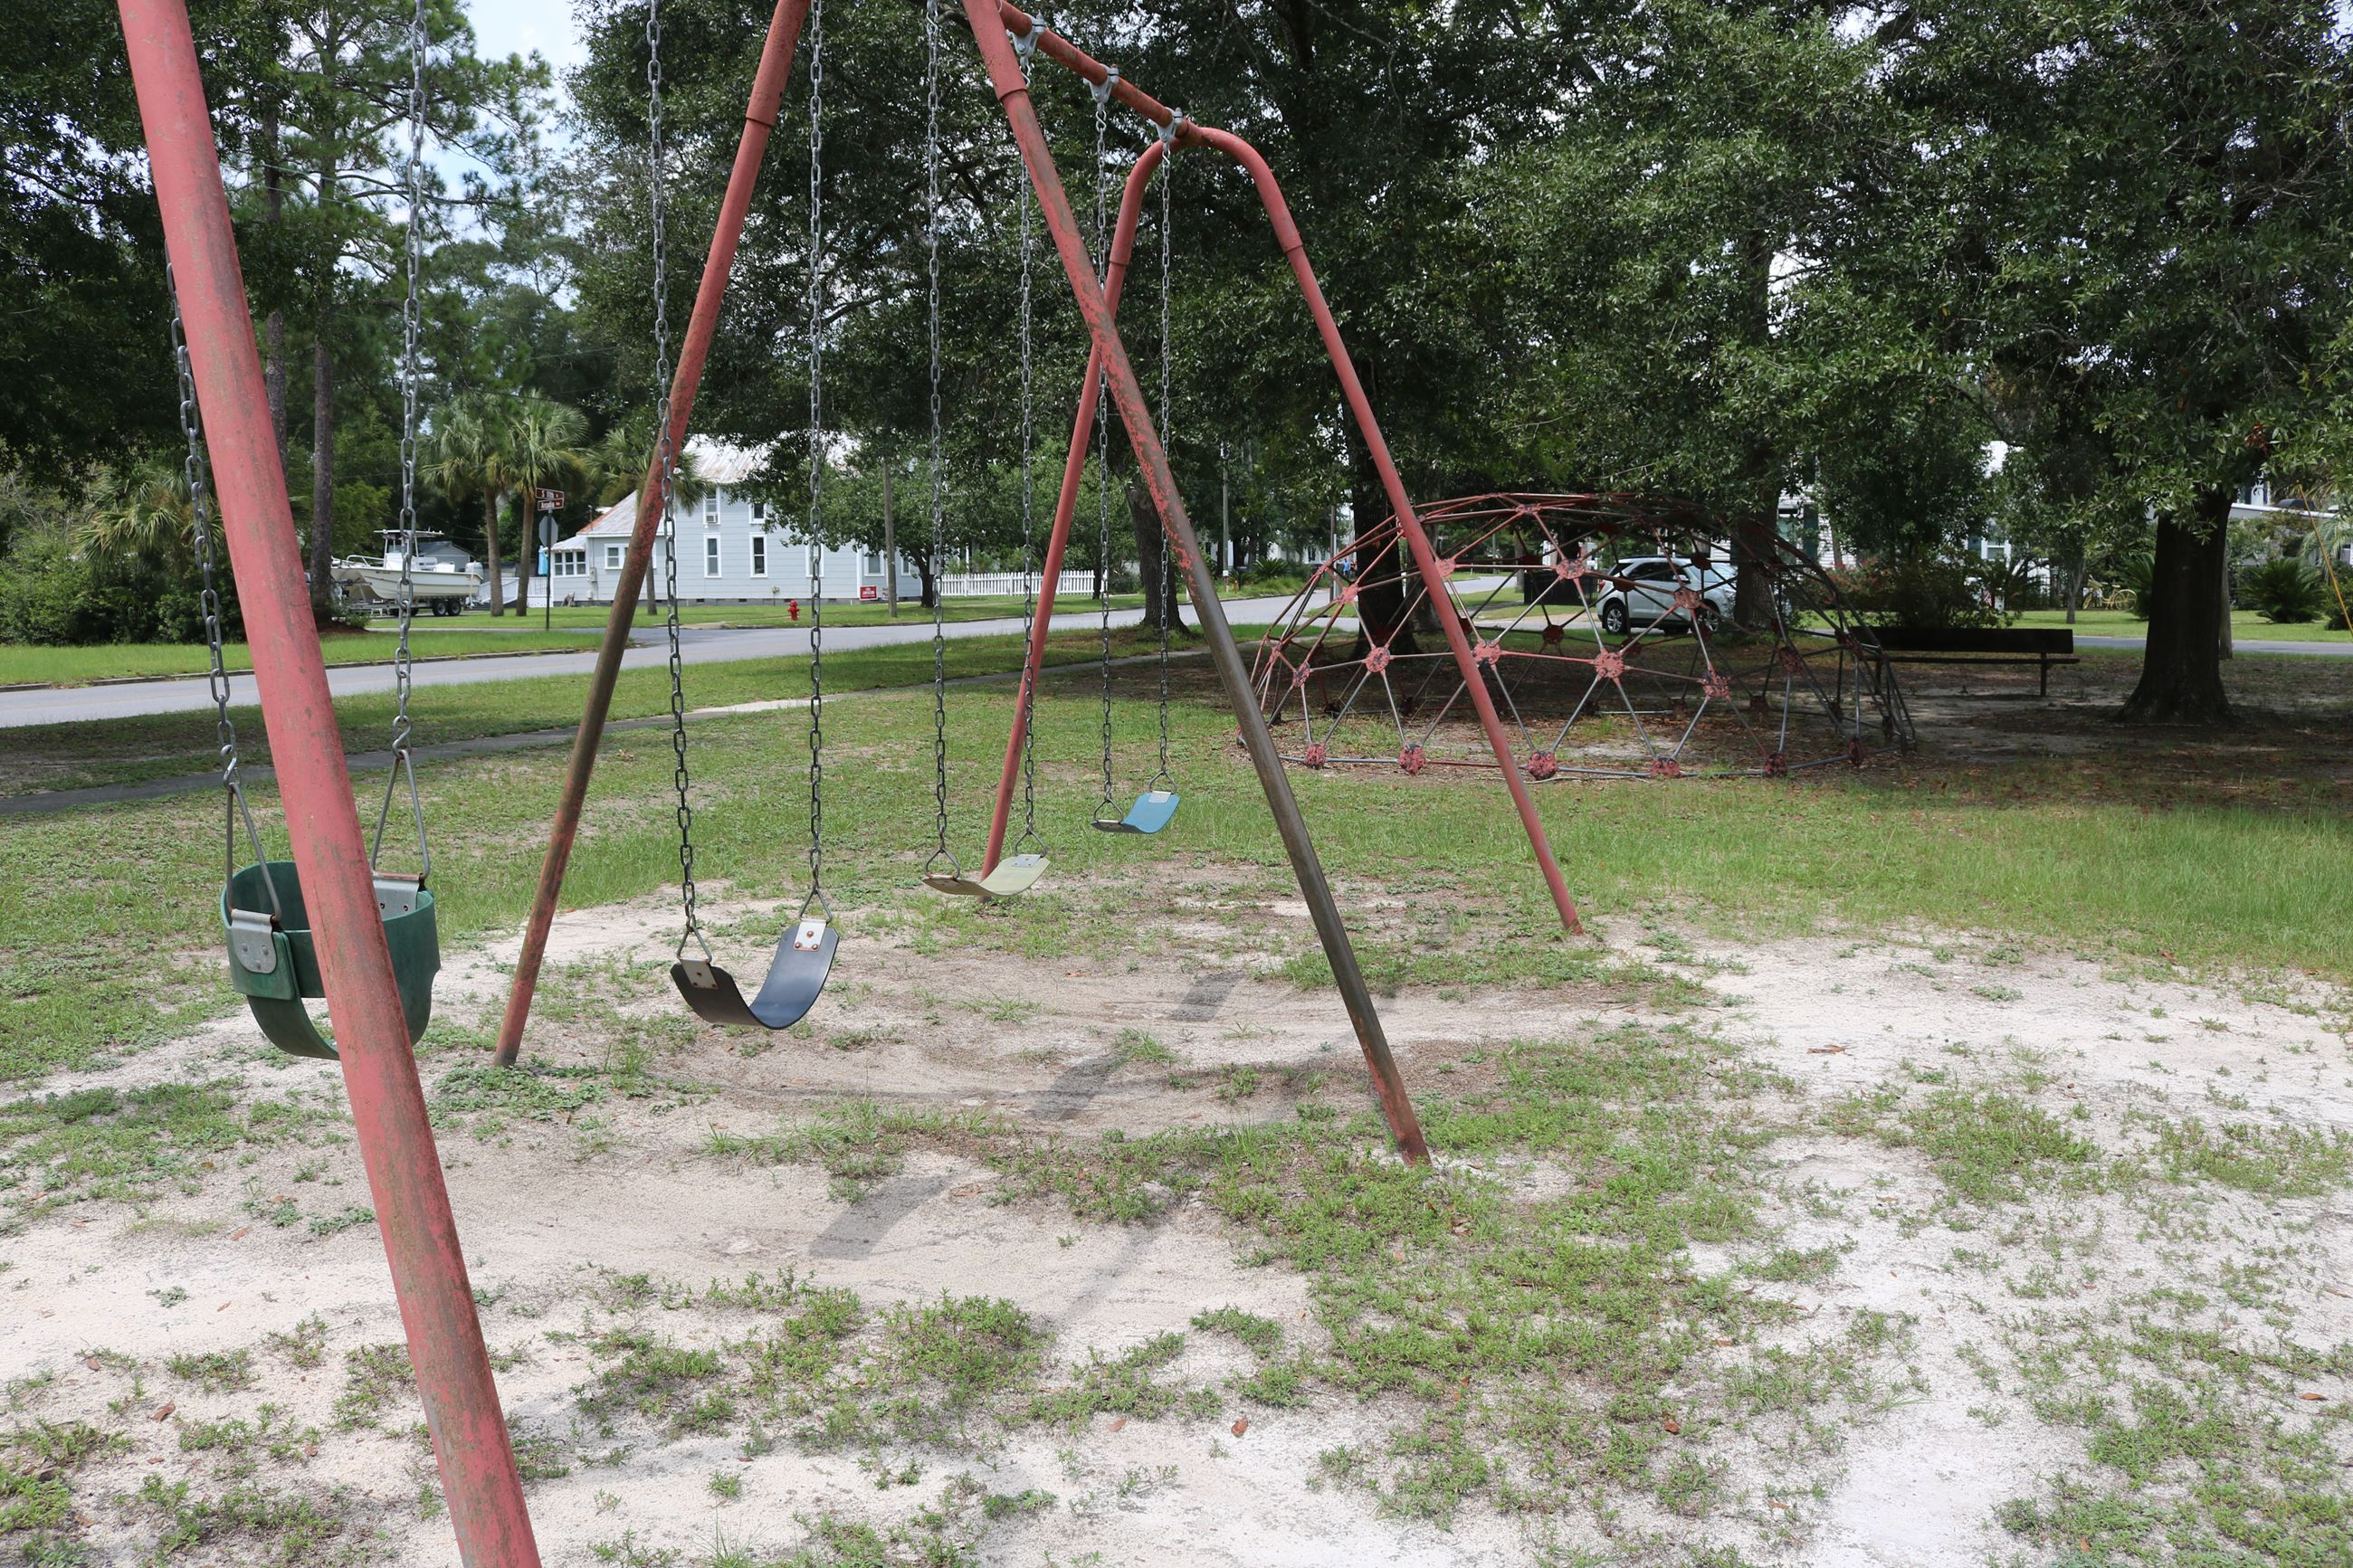 Swing set in a park